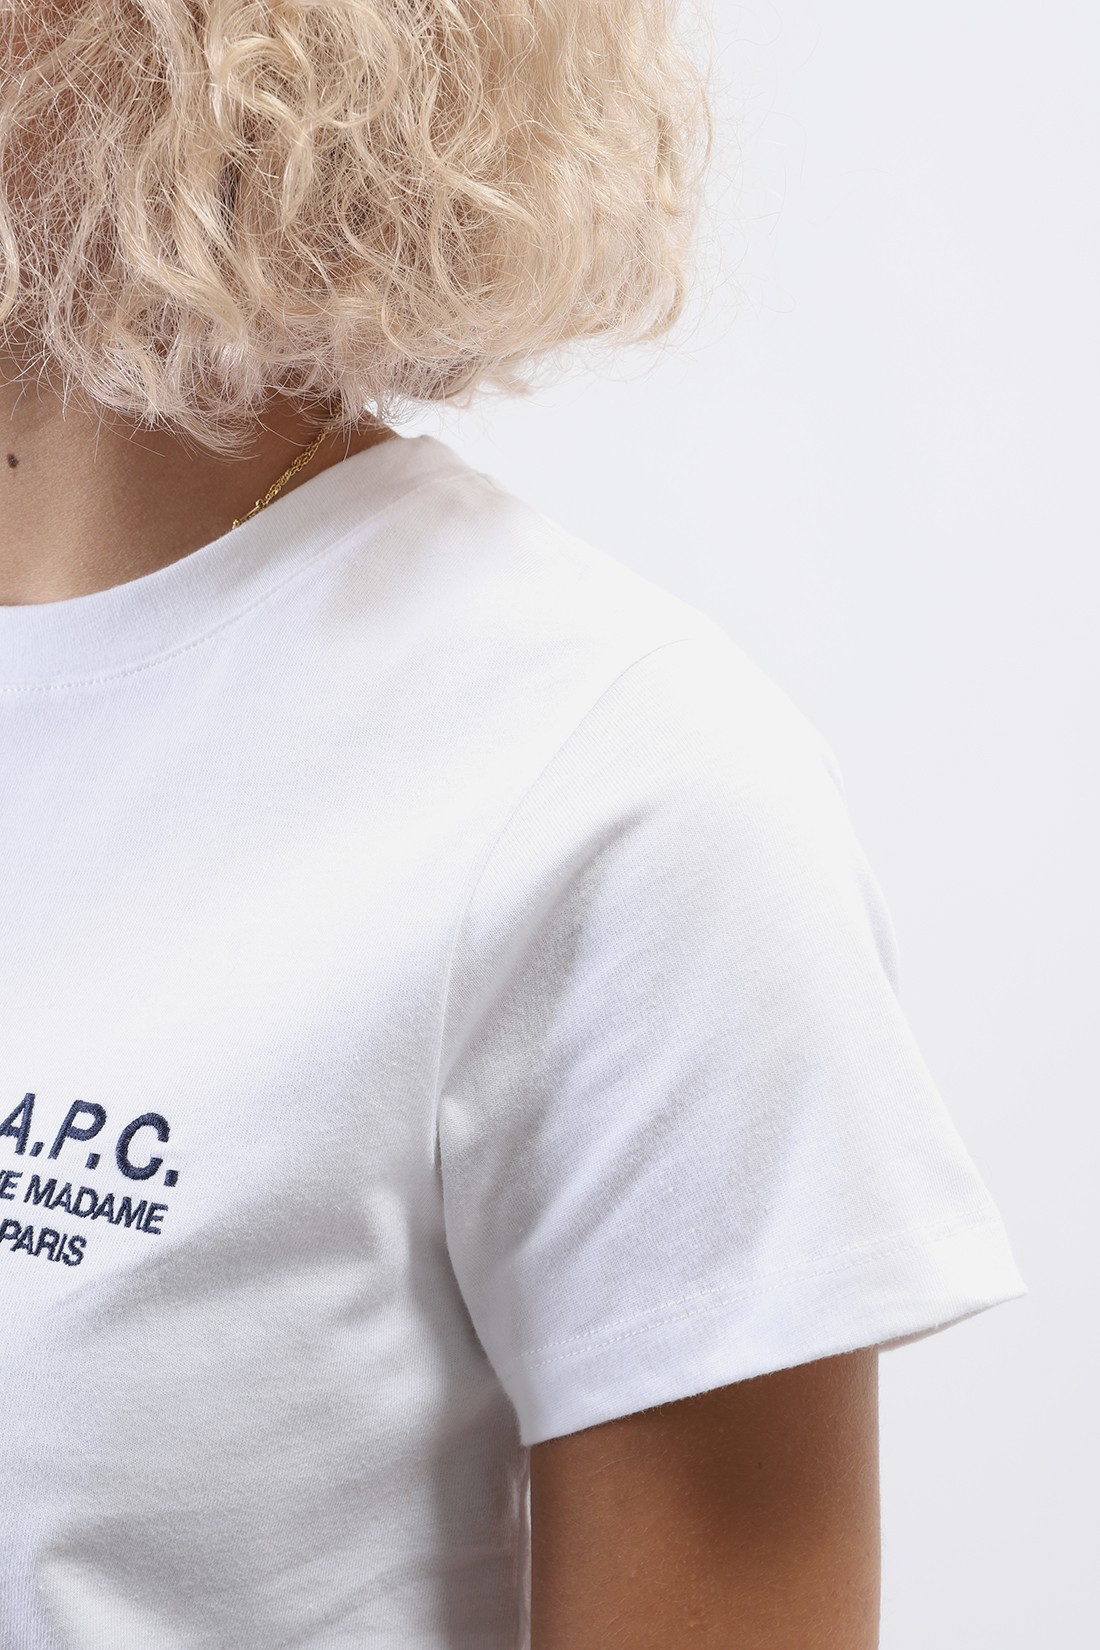 A.P.C. FOR WOMAN / T shirt denise Blanc